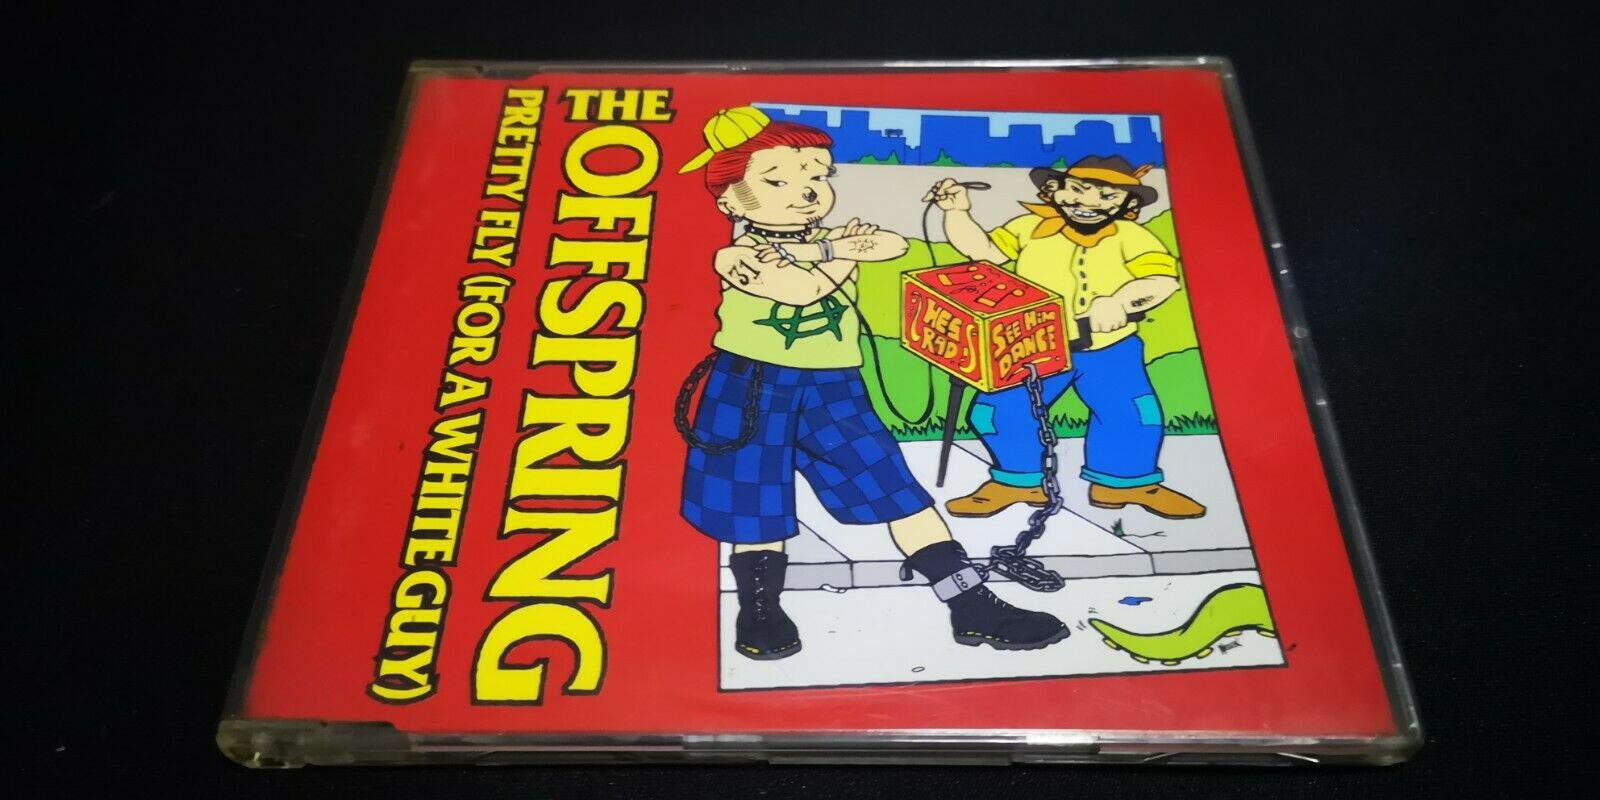 The Offspring ‎– Pretty Fly (For A White Guy) Cd Single